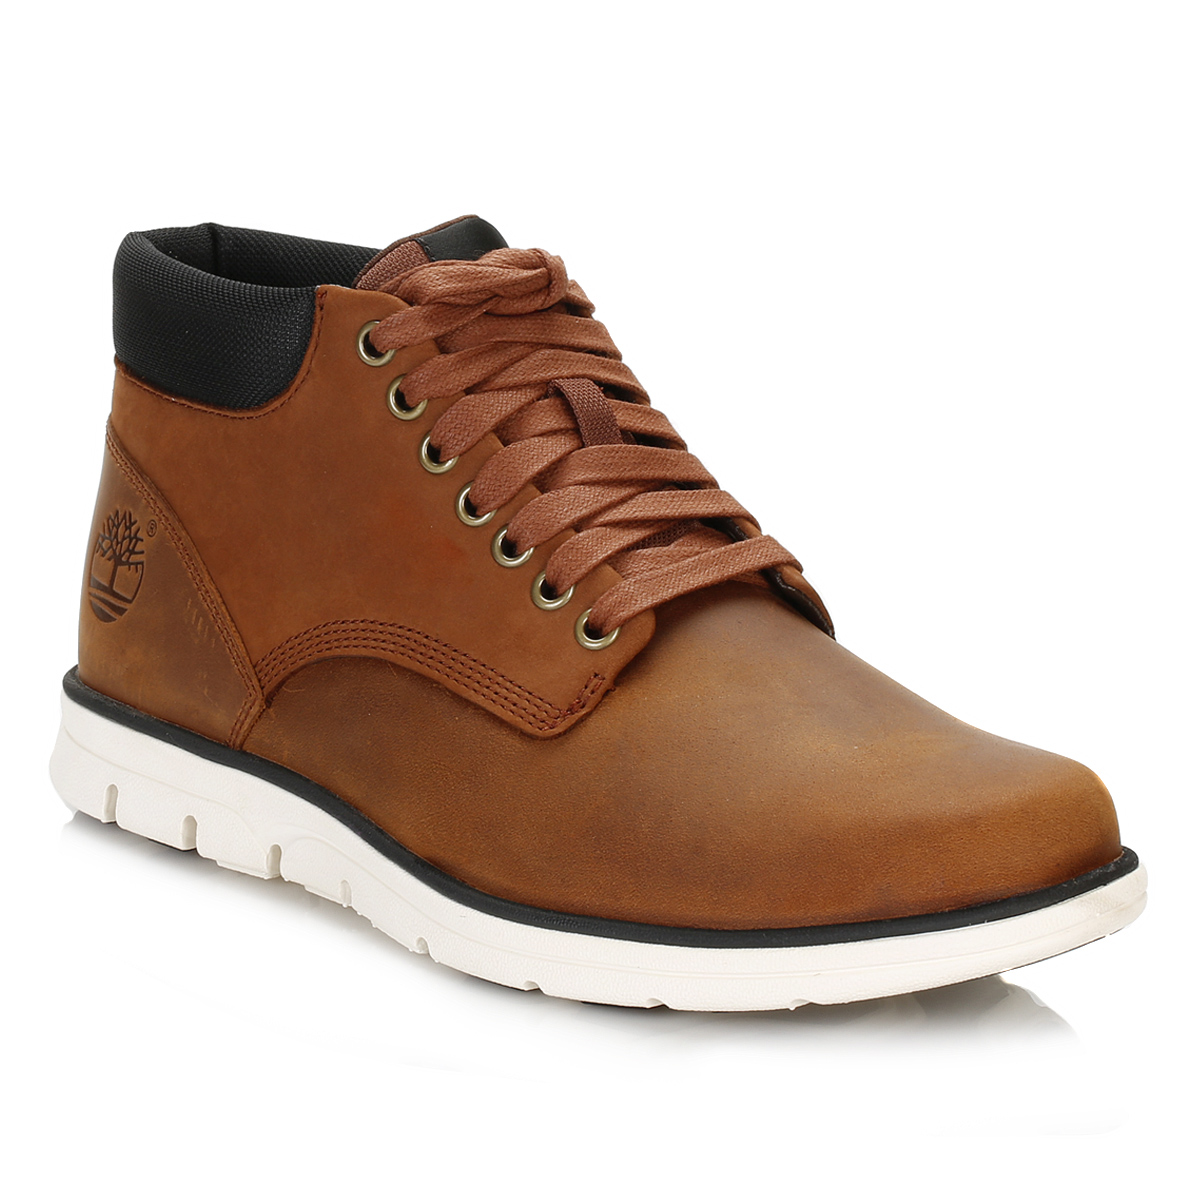 timberland mens chukka boots brown bradstreet leather